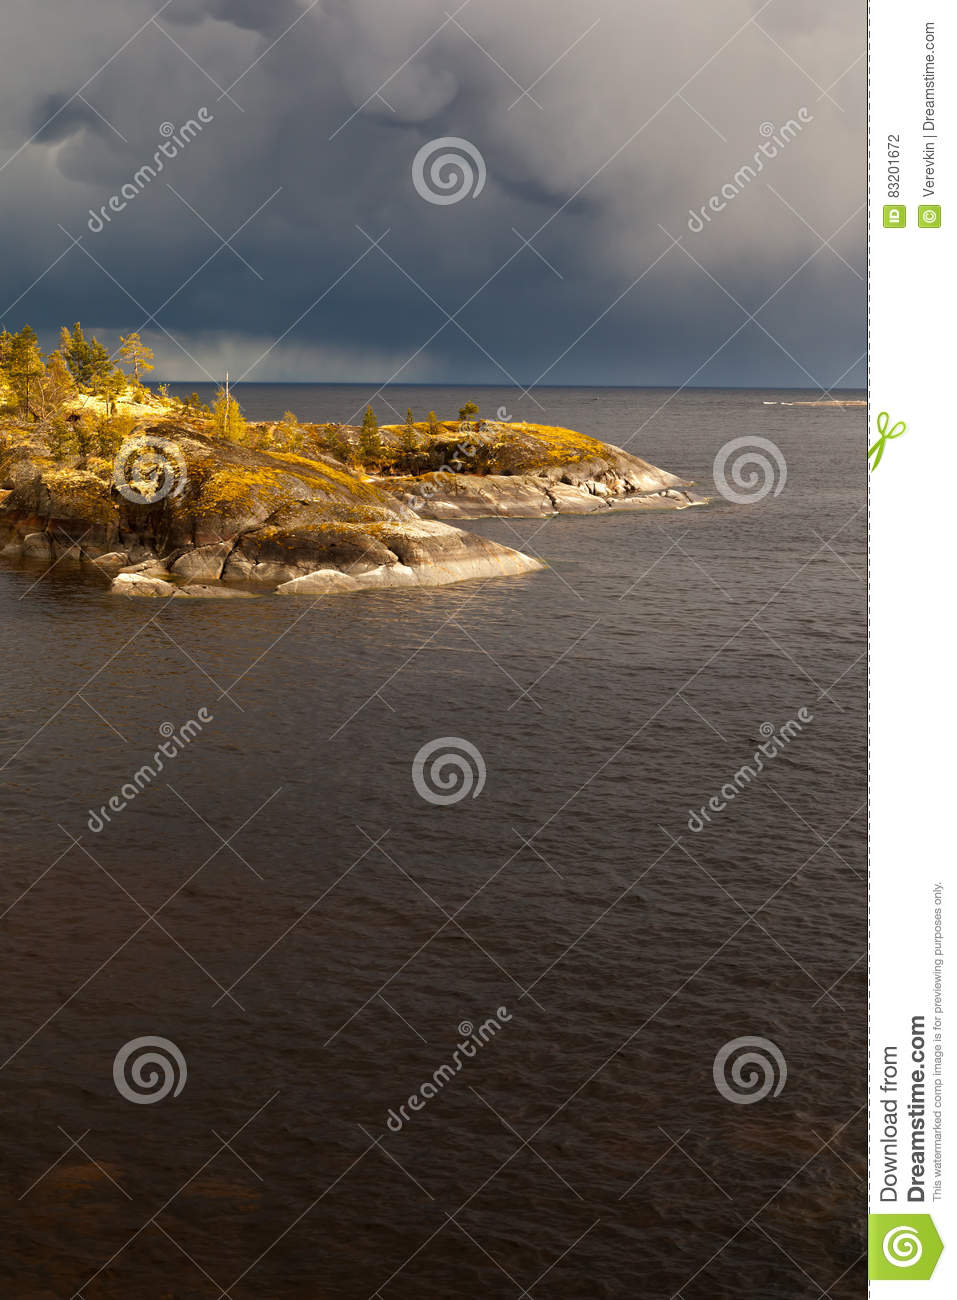 Sunny day on the rocky shore of the lake.